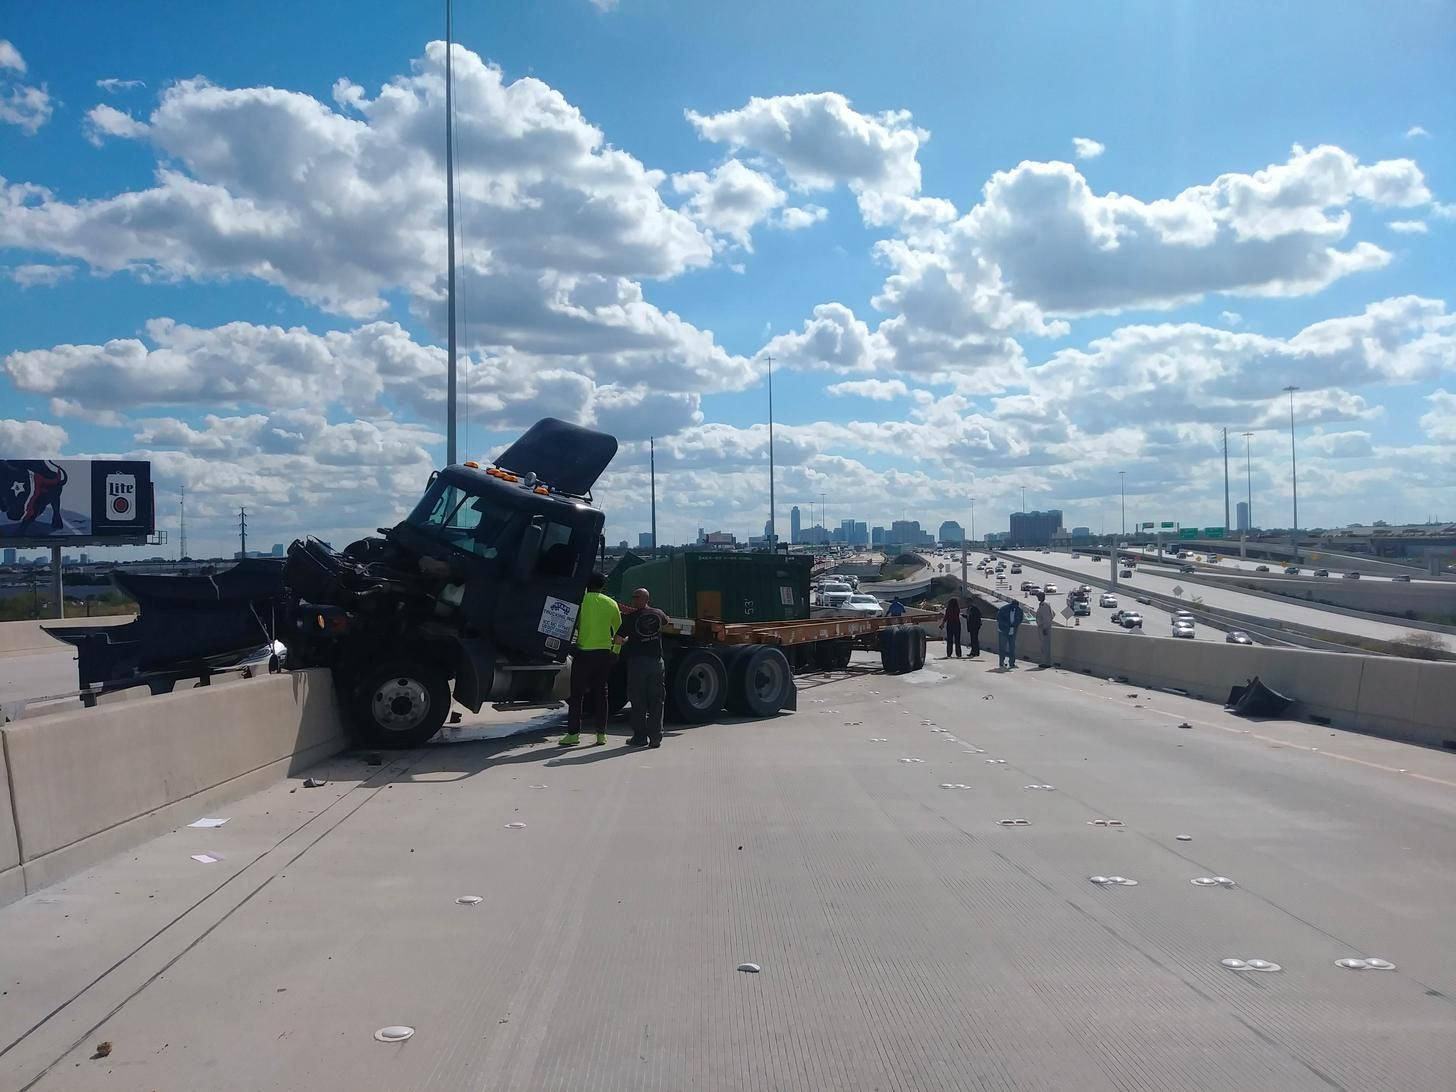 610 and 290 exit accident  Stay away  | Houston Volume Two